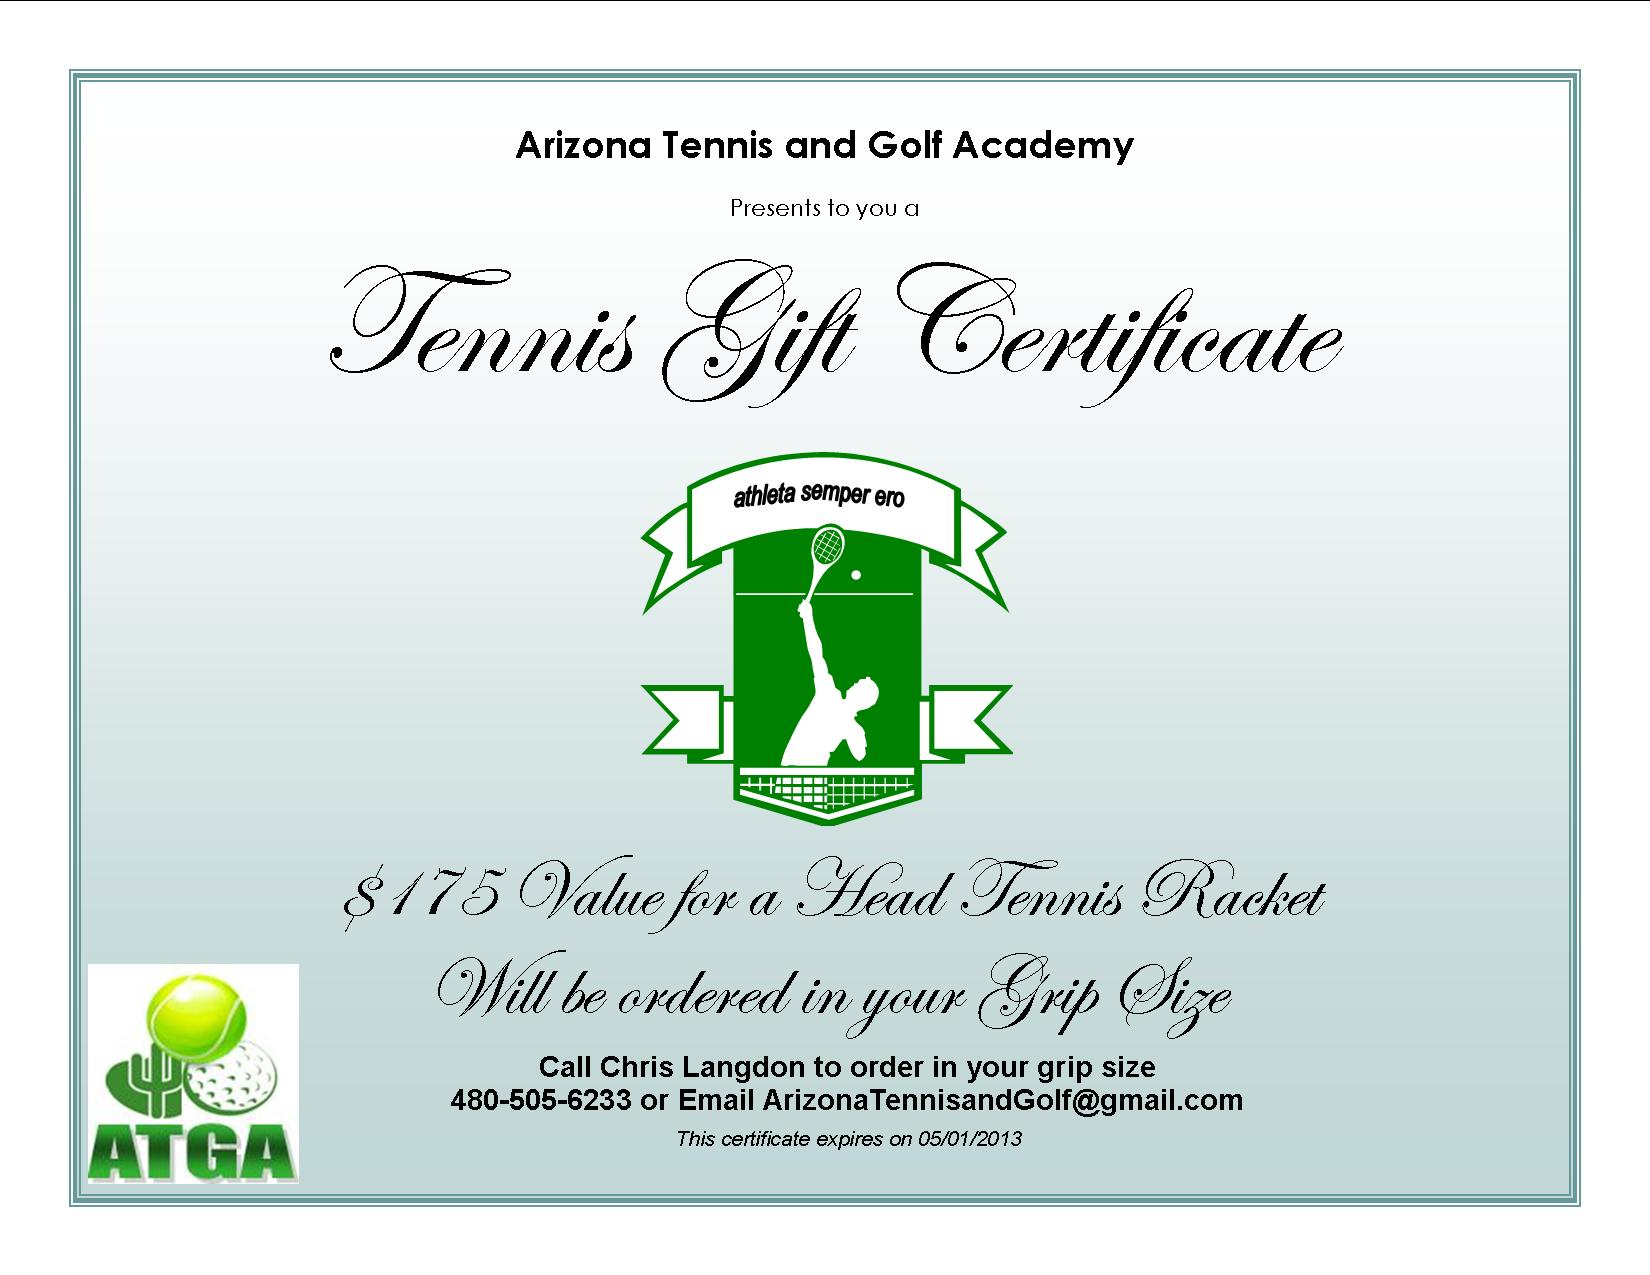 arizona tennis and golf academy current tennis specials